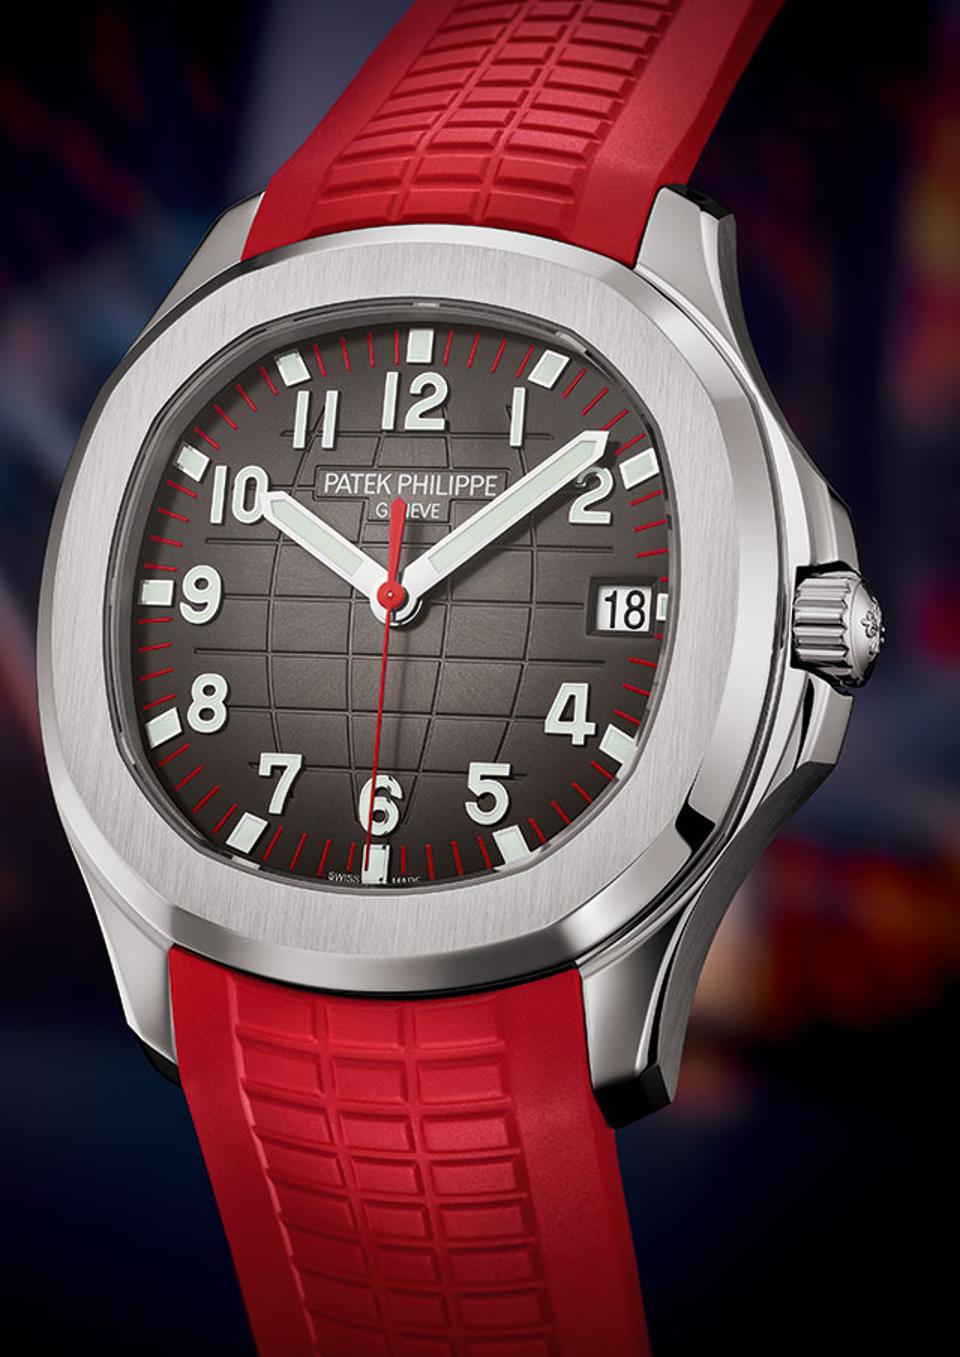 The new Patek Philippe Ref. 5167 Aquanaut, introduced at the Watch Art Grand Exhibition in Singapore.